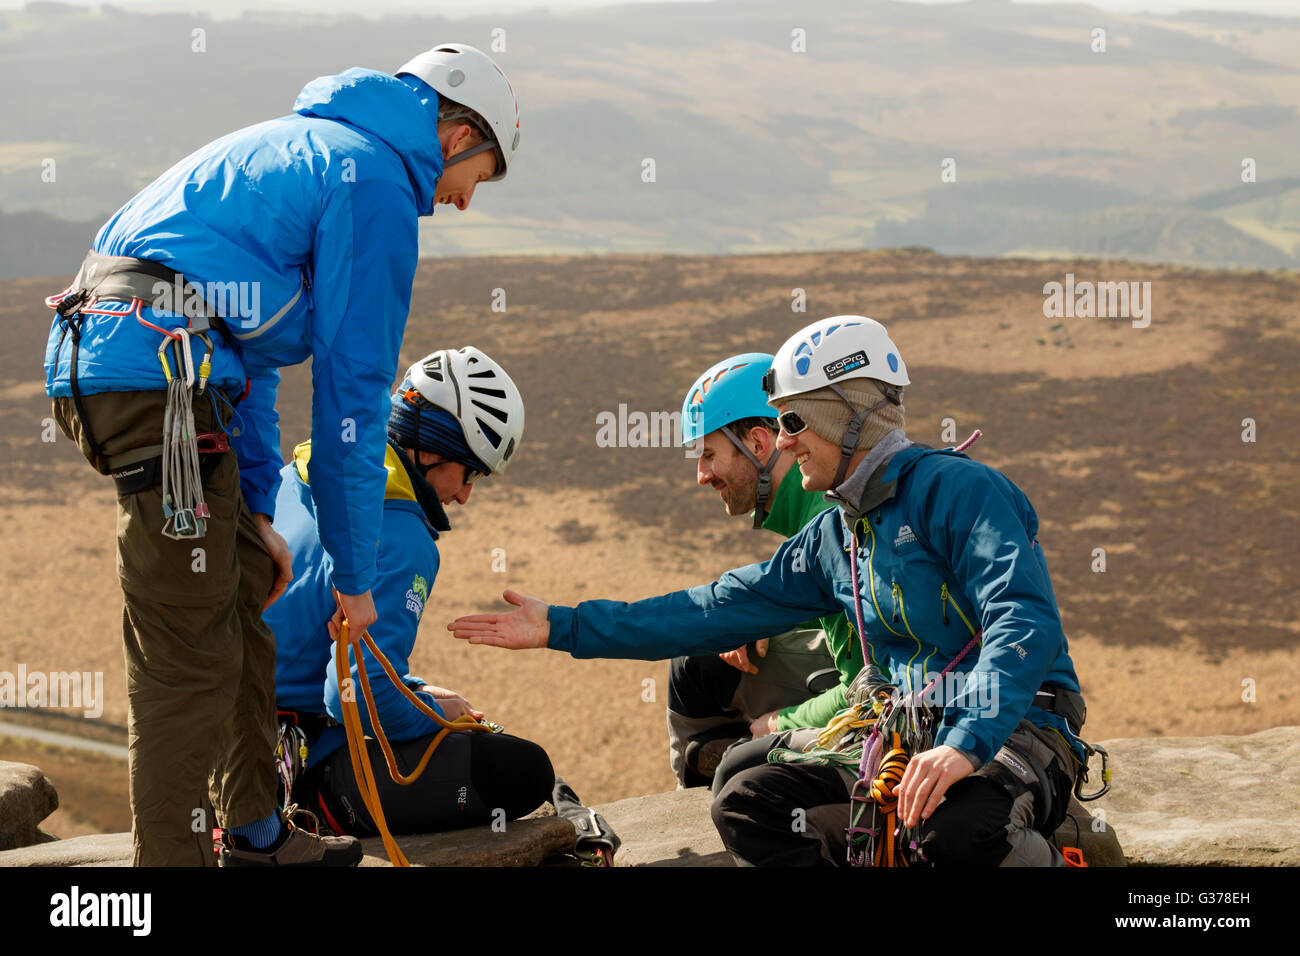 Group of rock climbers with ropes and safety gear in the Peak District Derbyshire England Stock Photo